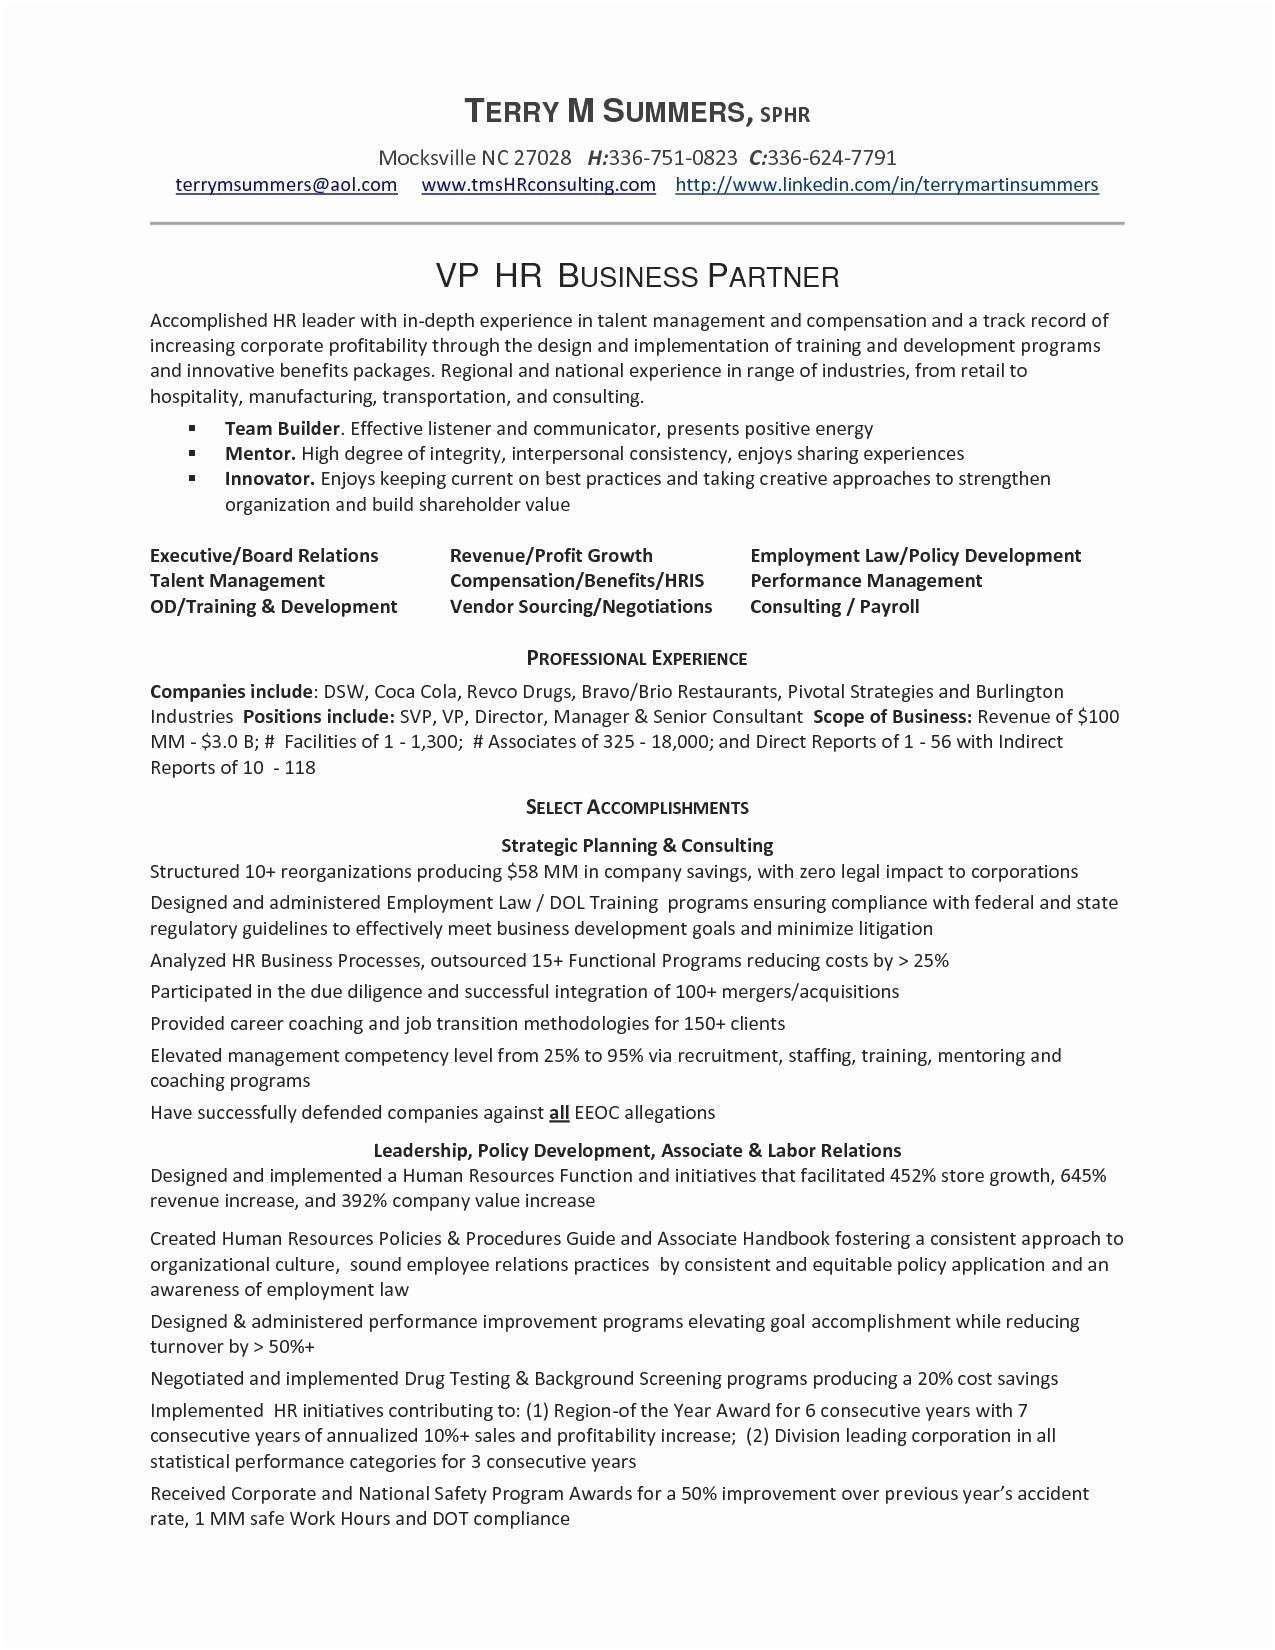 Business Plan For Cafe Free Template Inspirational Cafe And Intended For Business Plan For Cafe Free Template